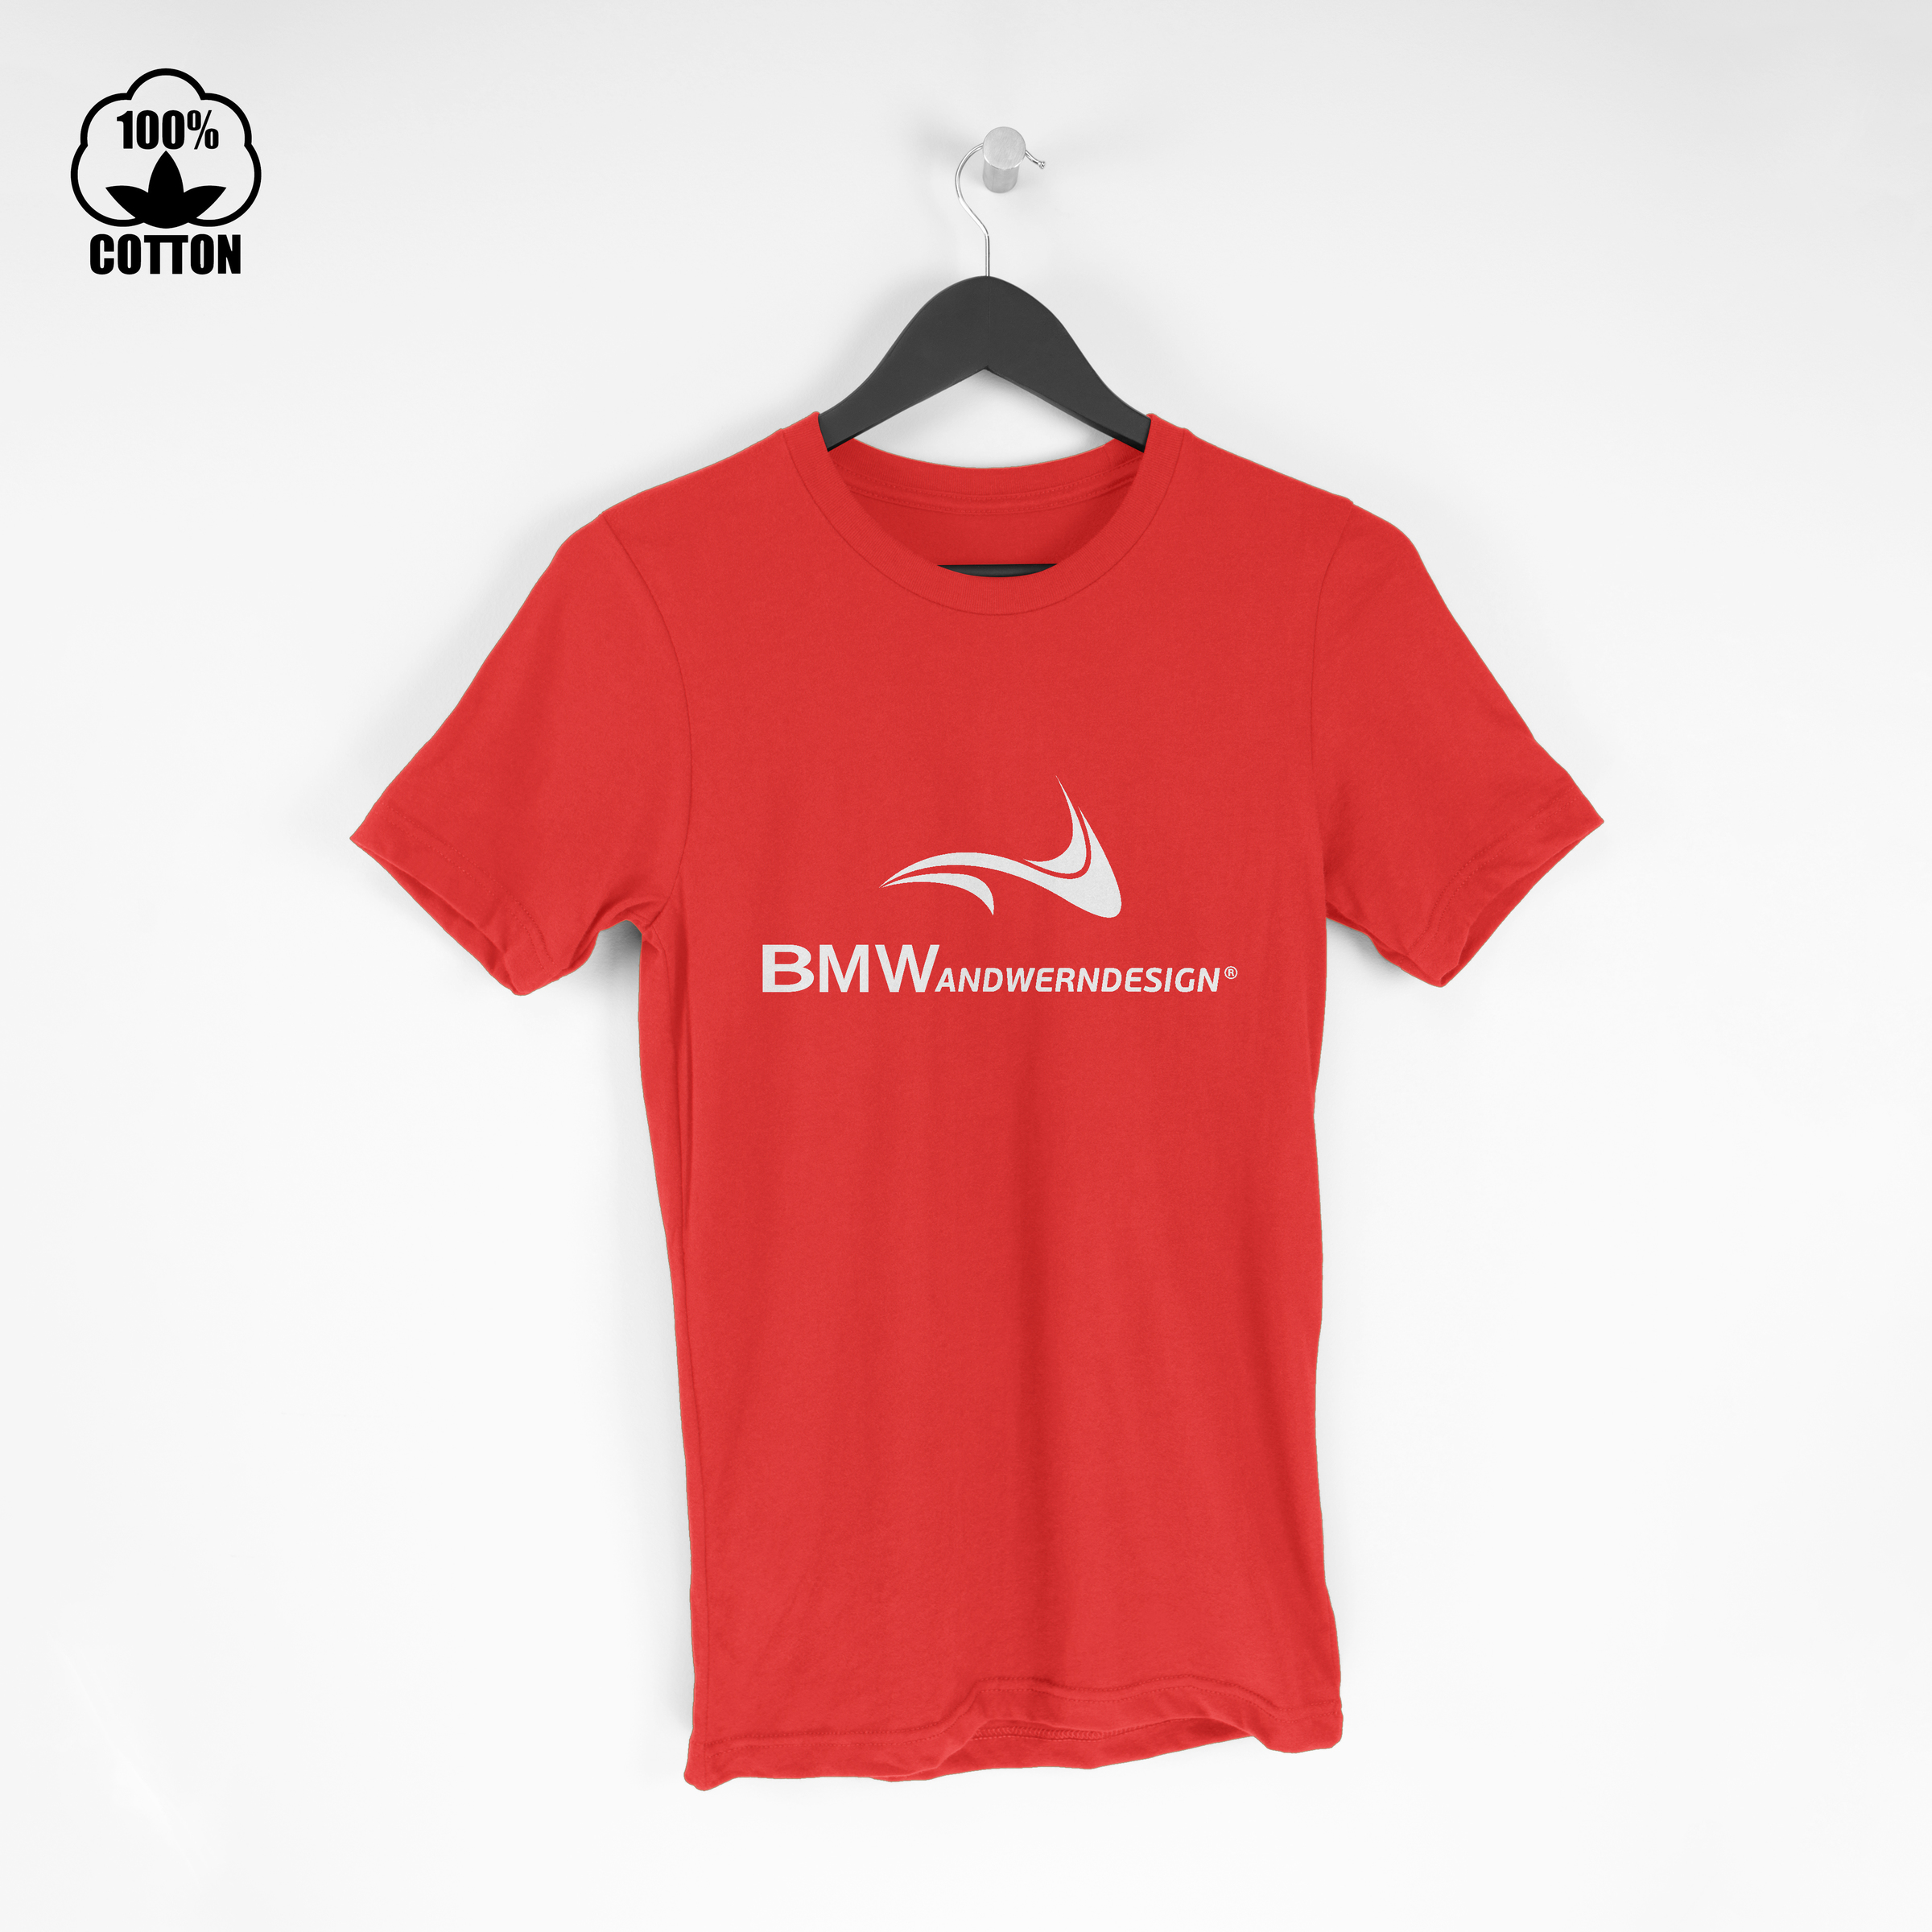 Bmw Andwerndesign Logo T-Shirt New Design Short Sleeve b.jpg